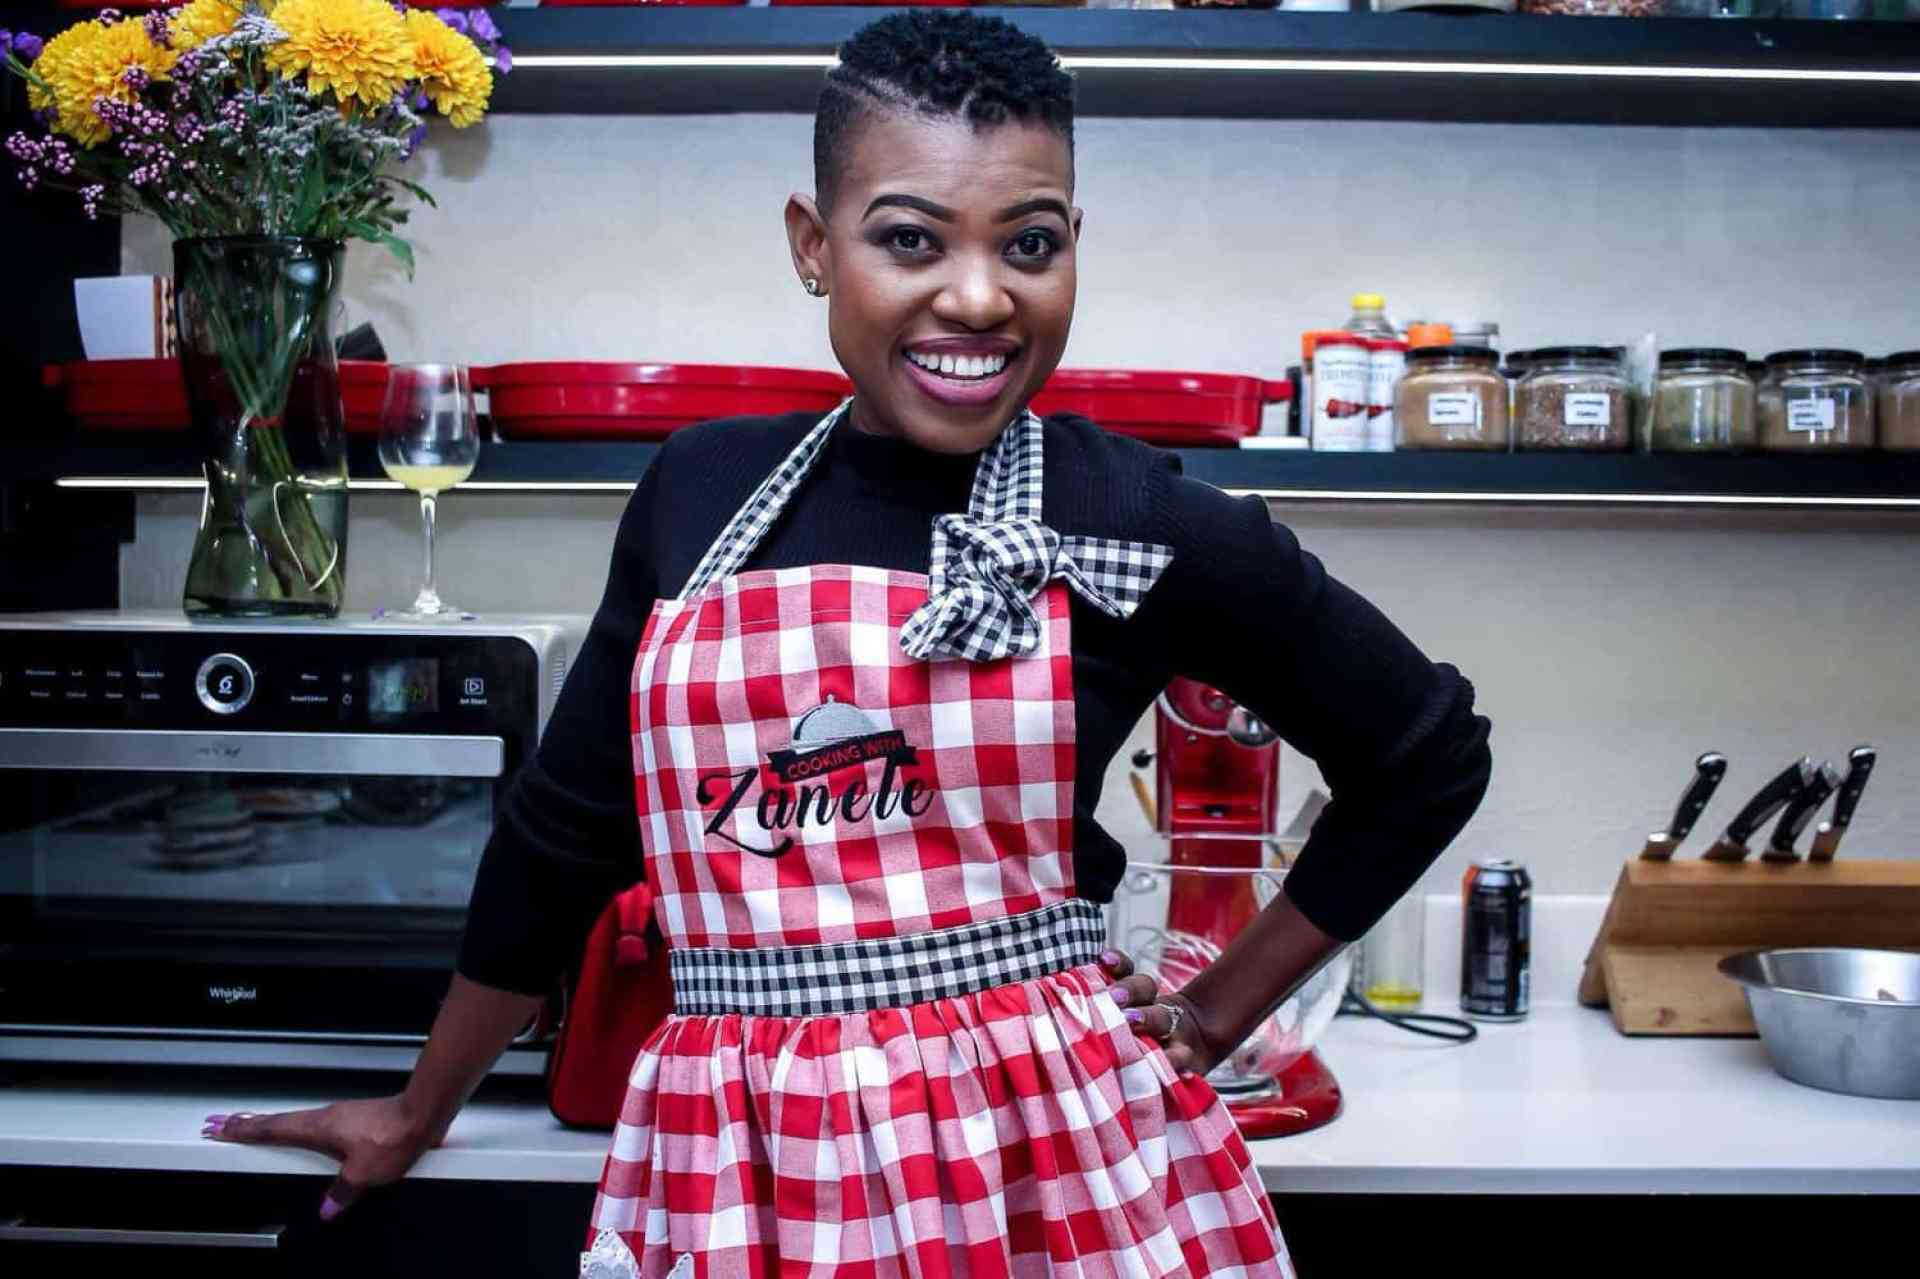 Chef and author Zanele Van Zyl hosts cooking classes and self-published her first cook book in October 2018.